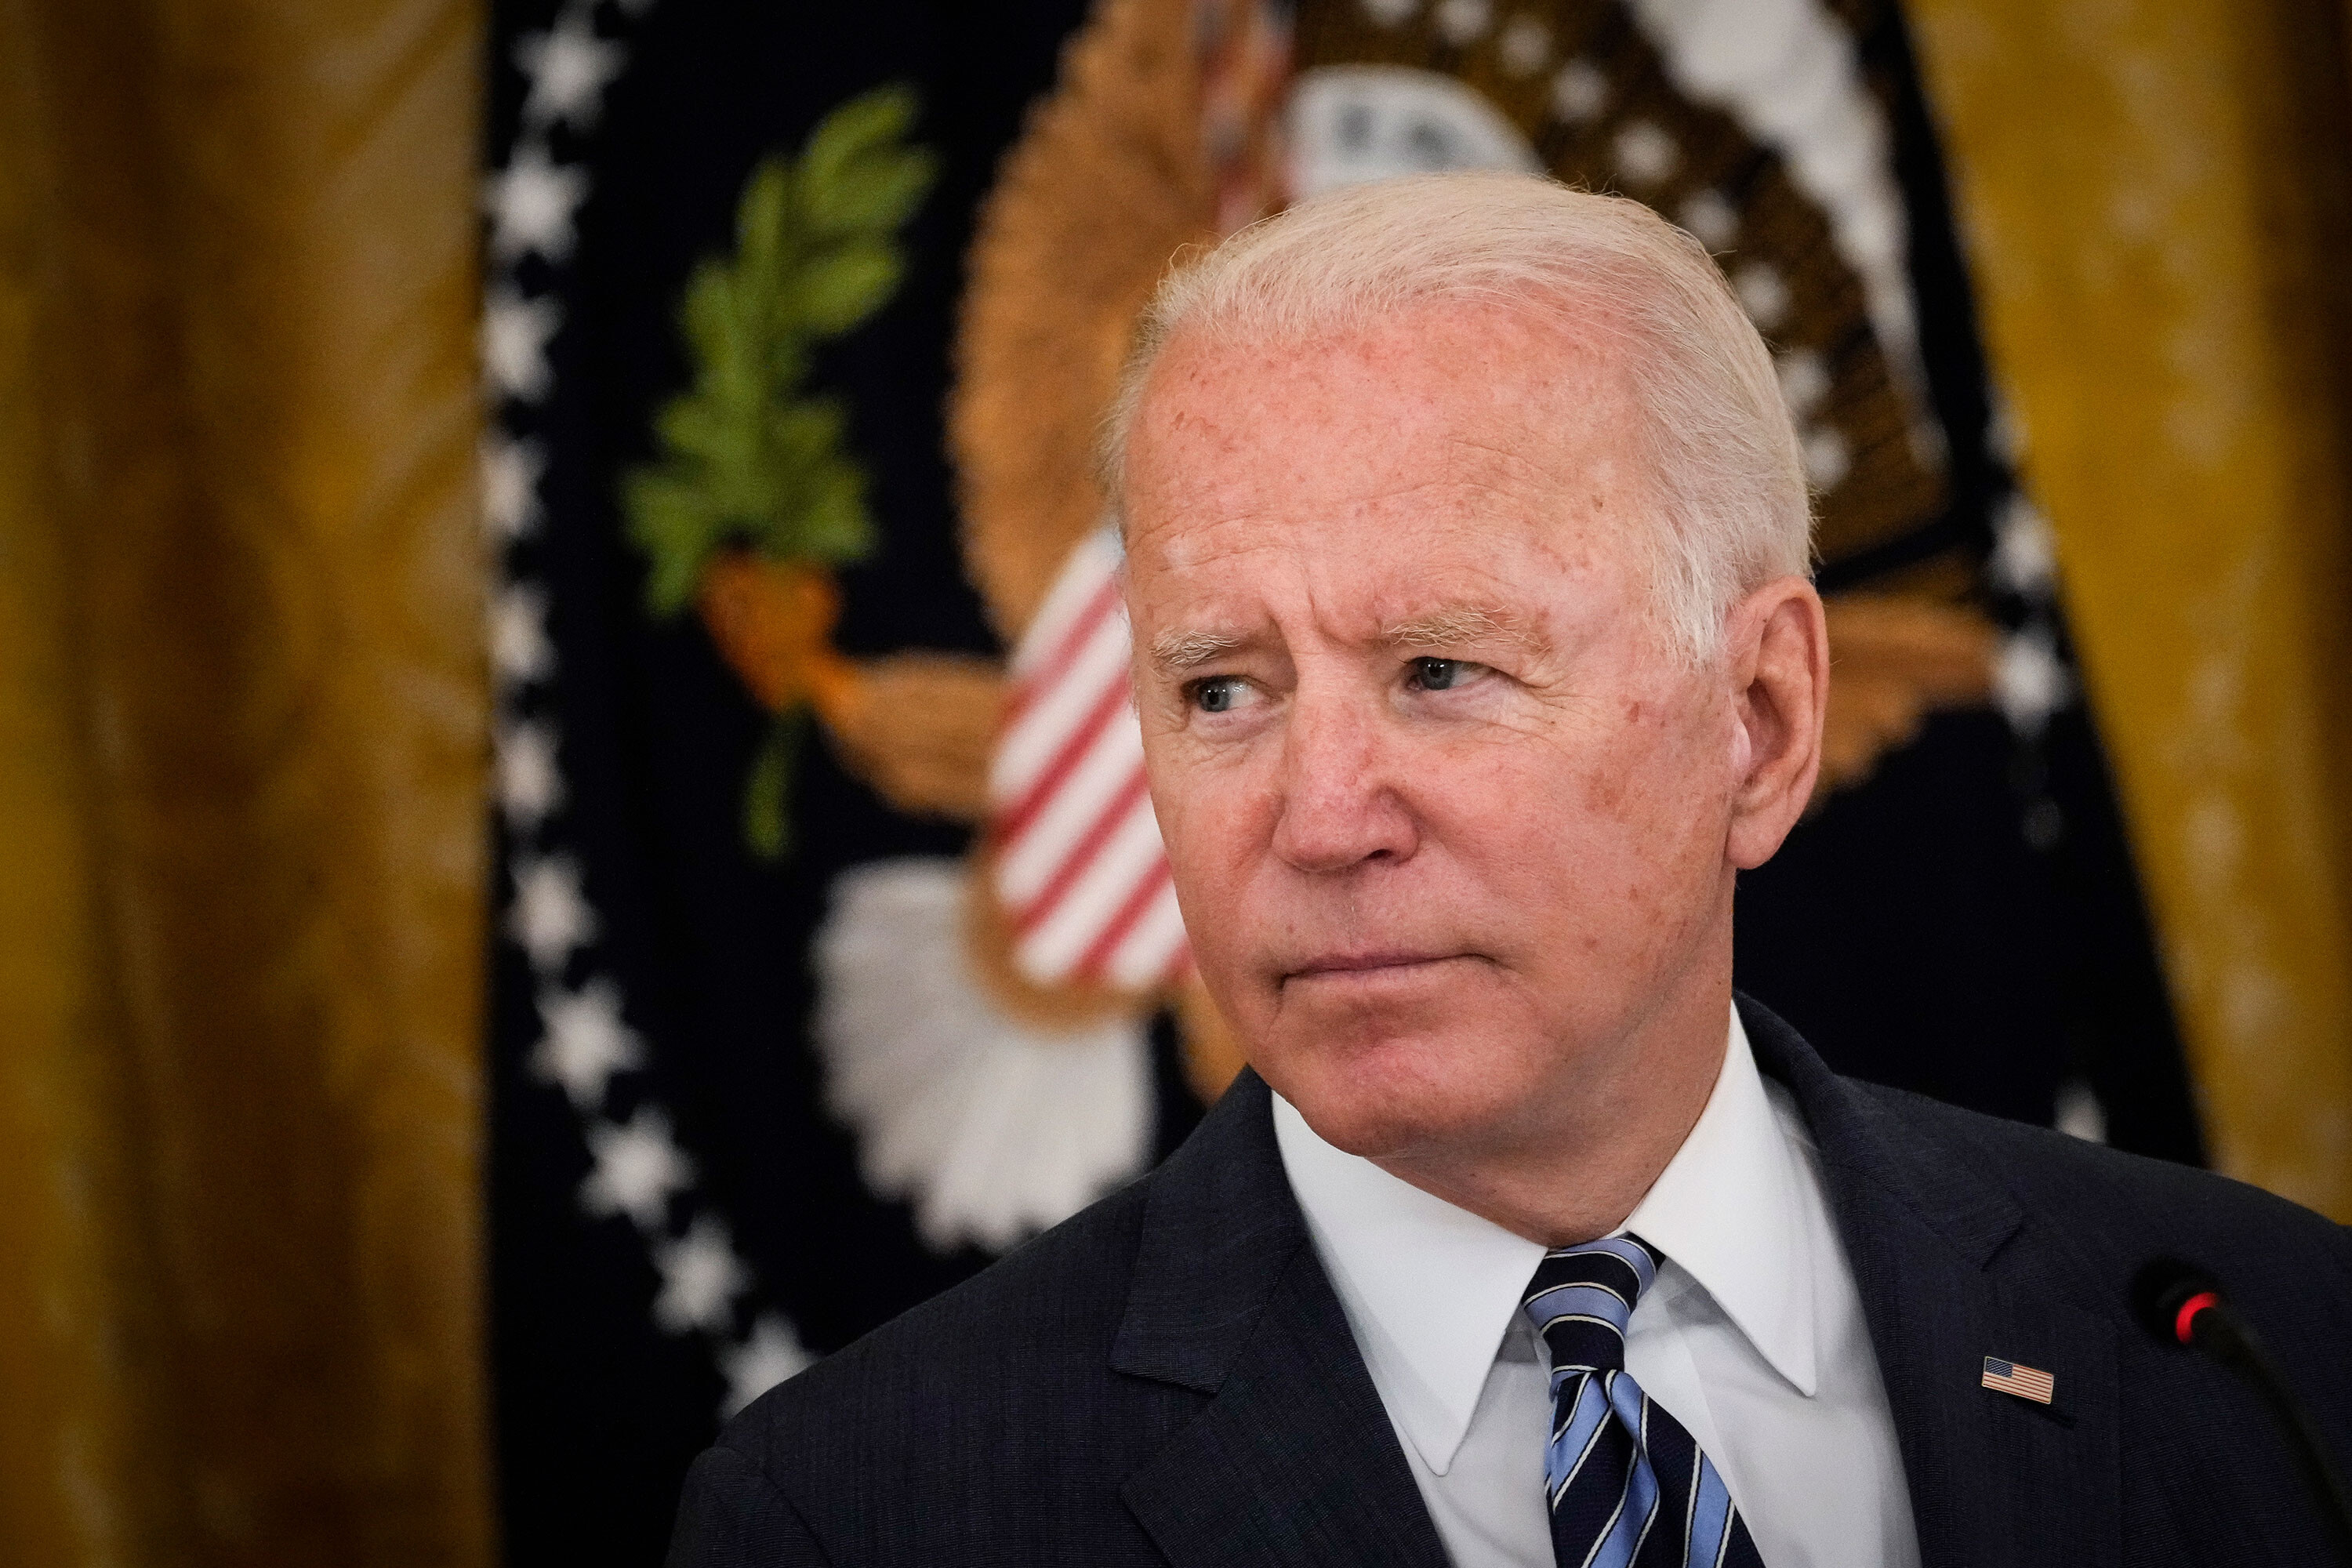 Crisis of Haitian migrants exposes rifts for Biden on immigration